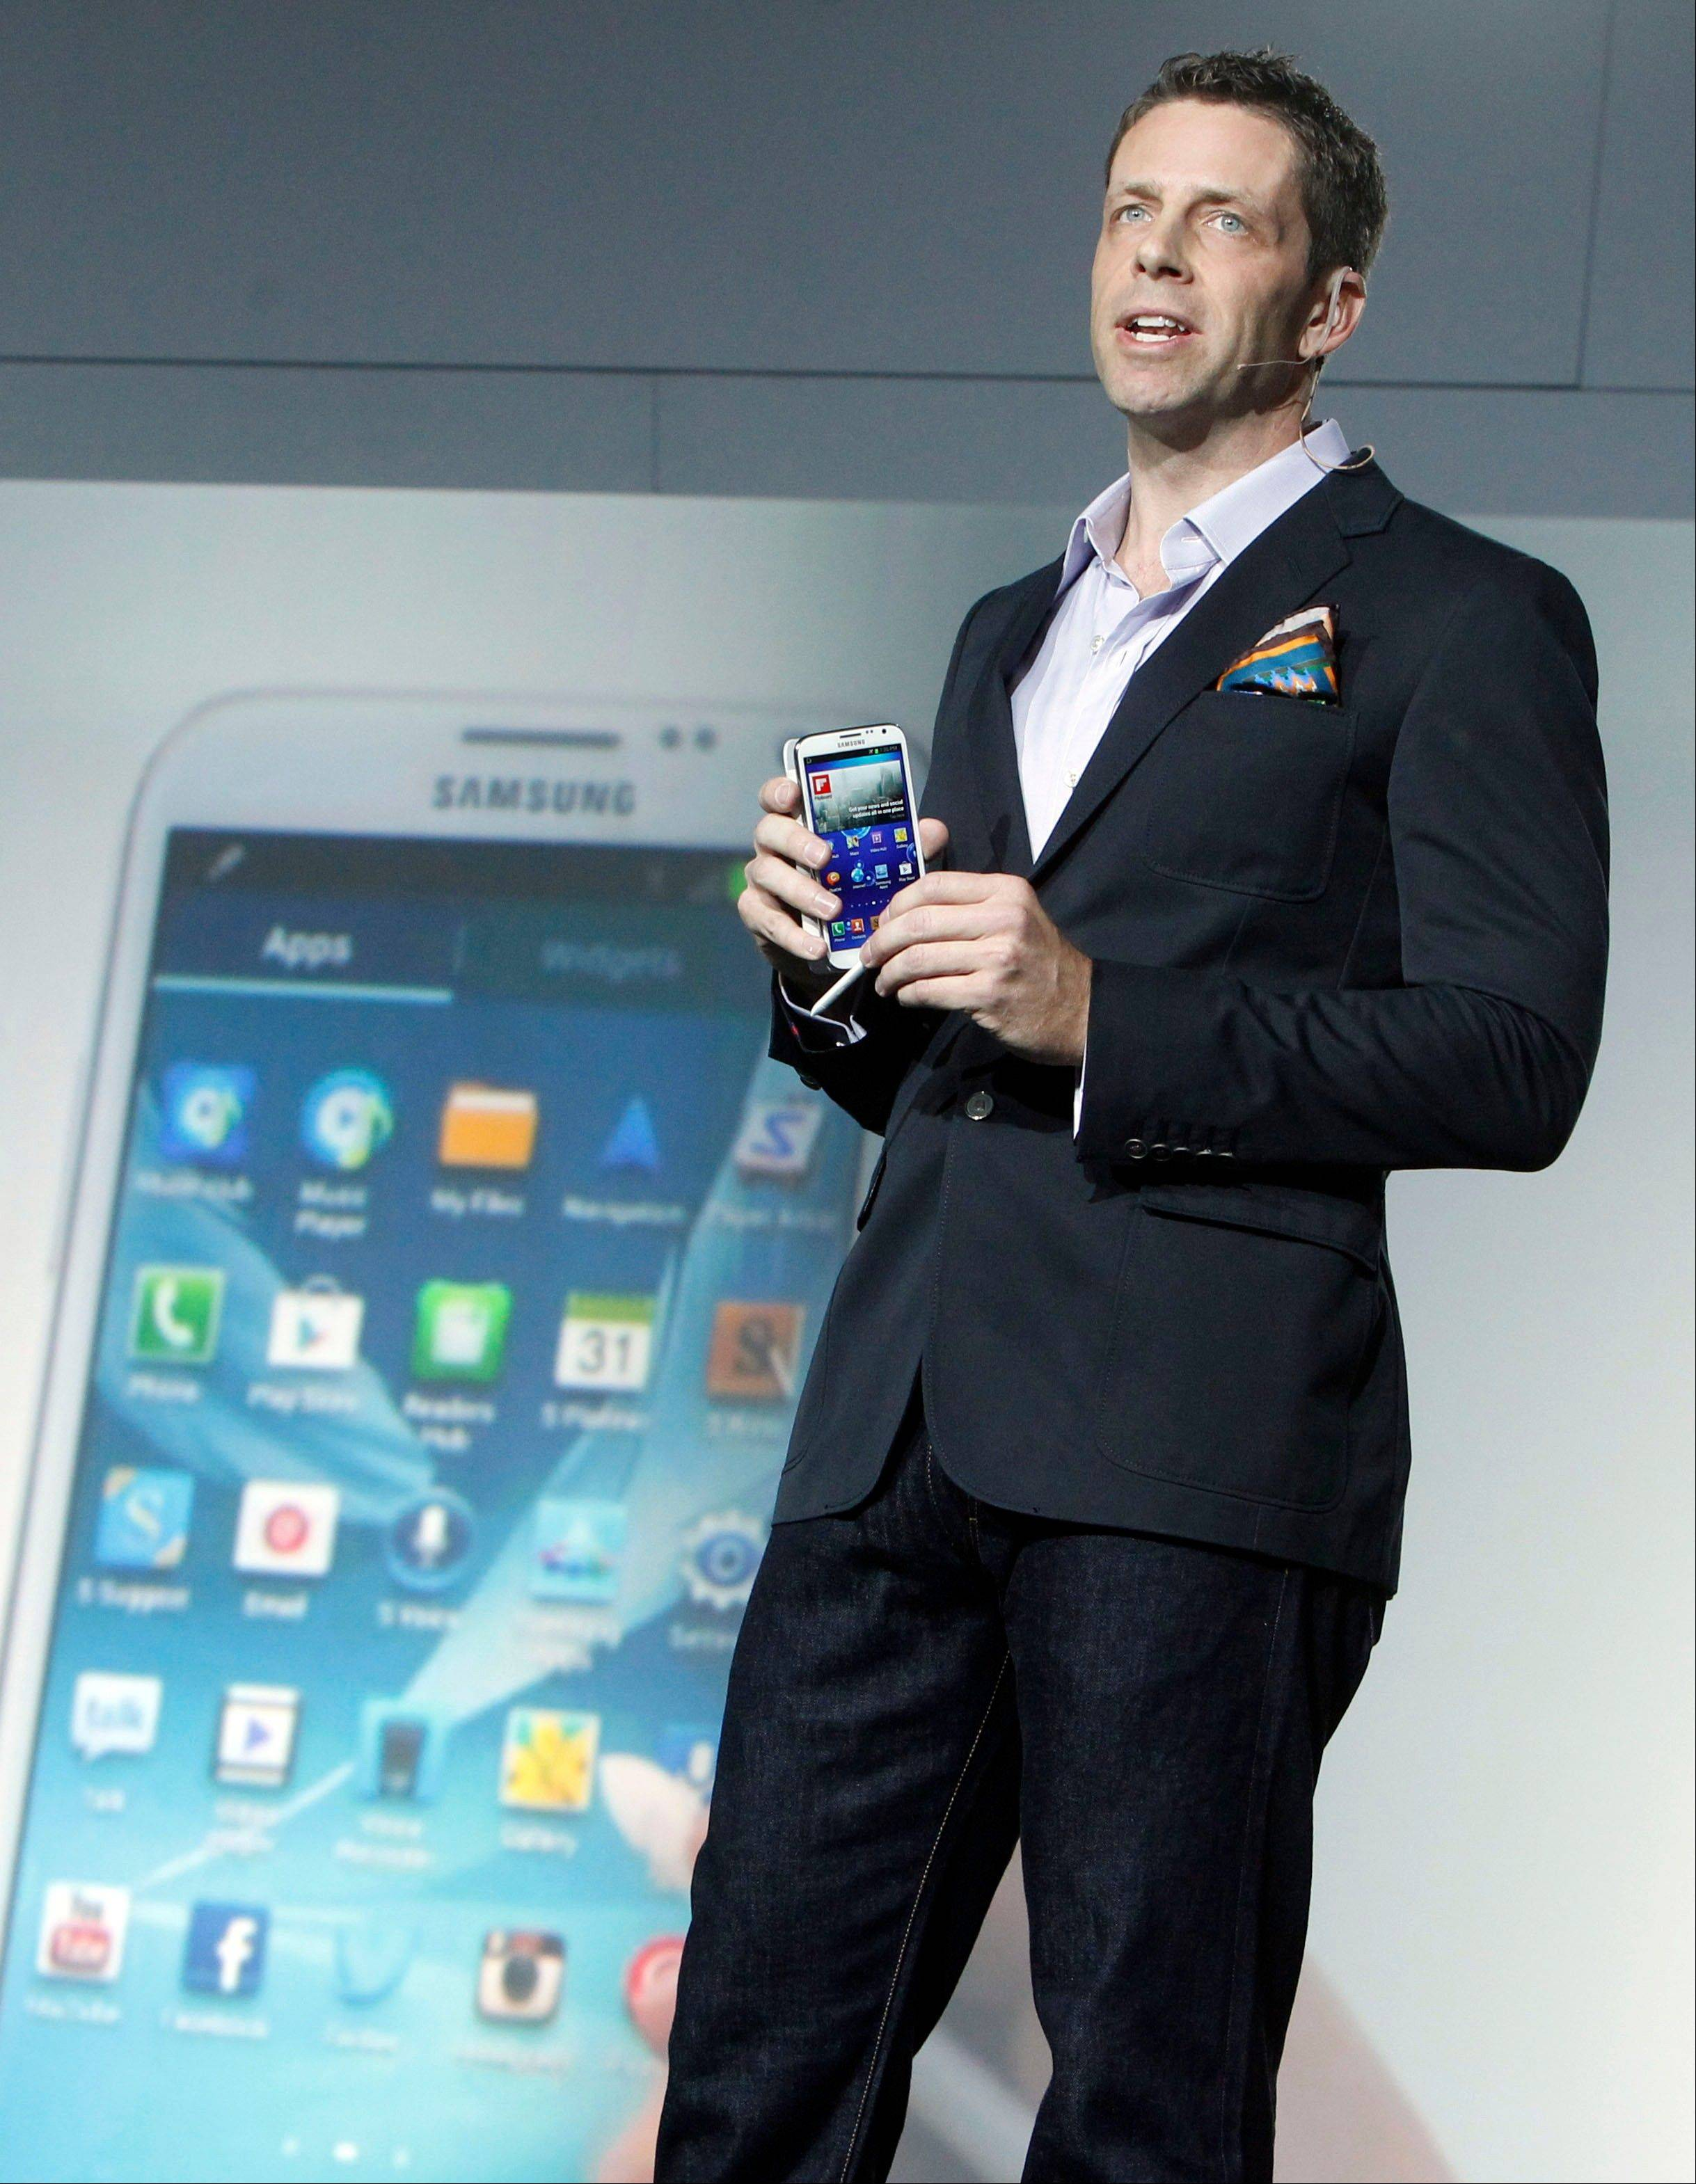 Kevin Packingham, chief product officer for Samsung Mobile USA, demonstrates the new Samsung Galaxy Note II Wednesday during a launch event in New York.